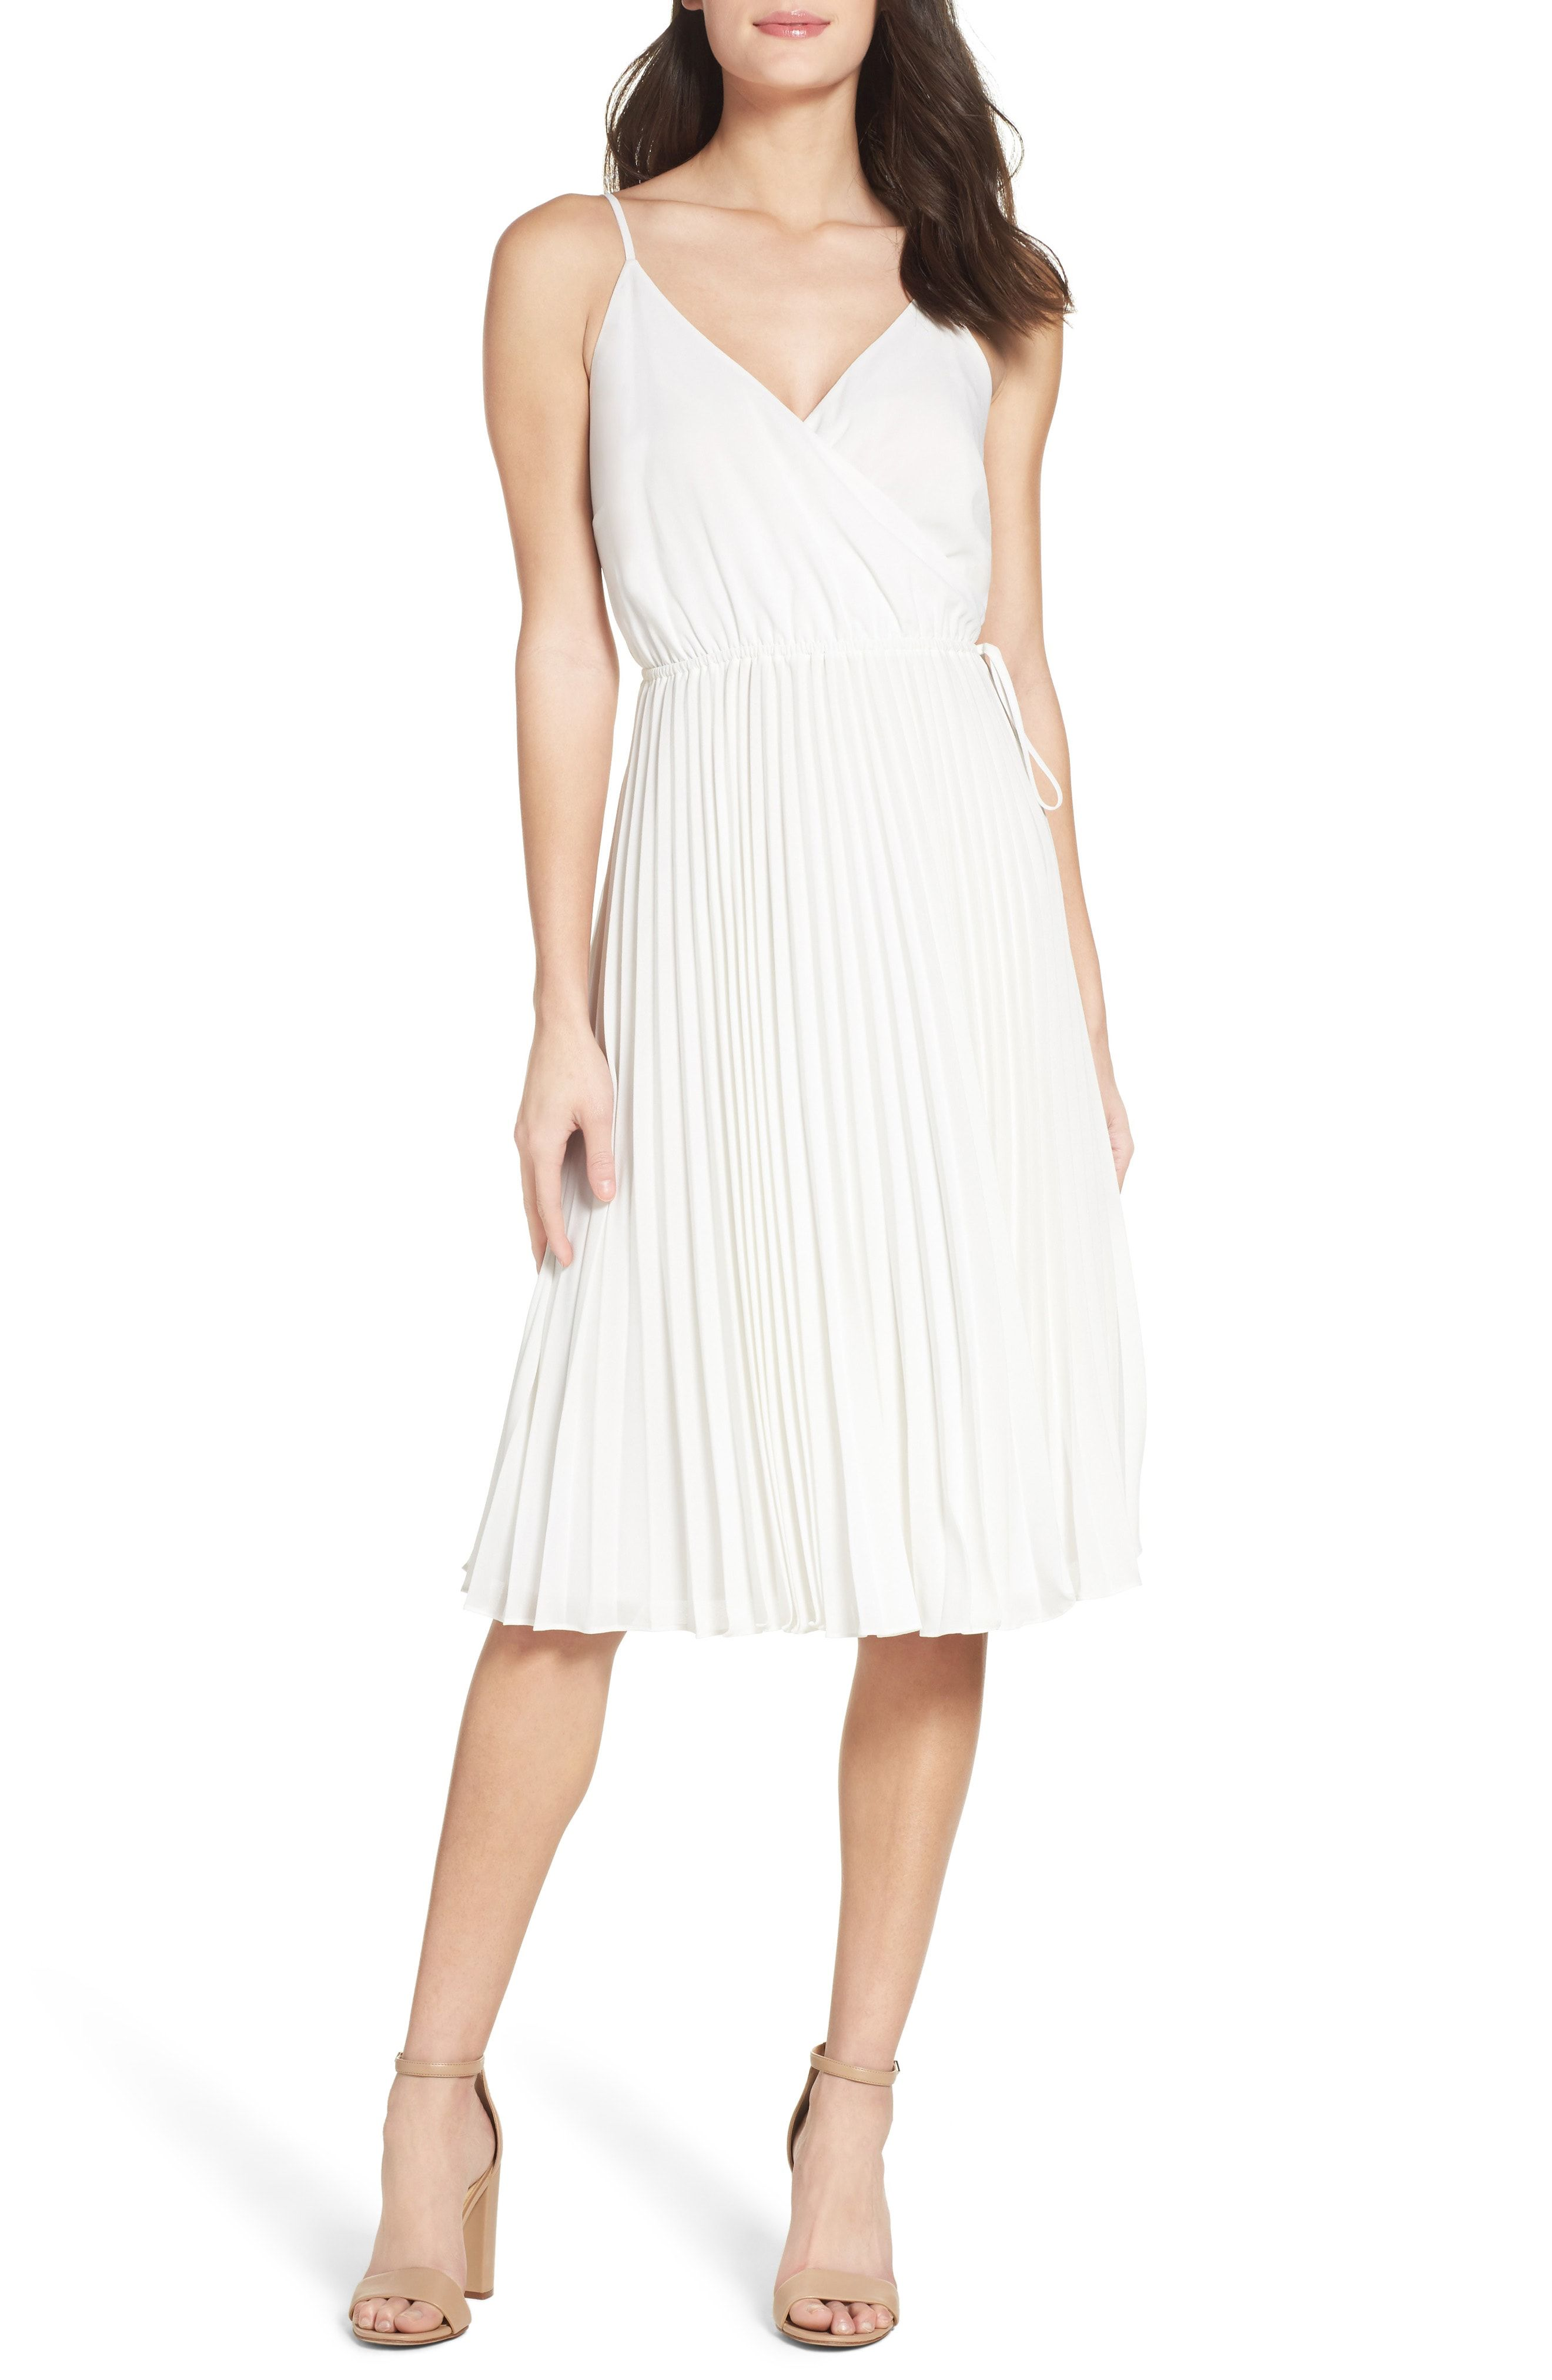 Ali Jay Lily Pond Fit Flare Dress Available At Nordstrom Pleated Midi Dress Little White Dresses White Dresses For Women [ 4048 x 2640 Pixel ]